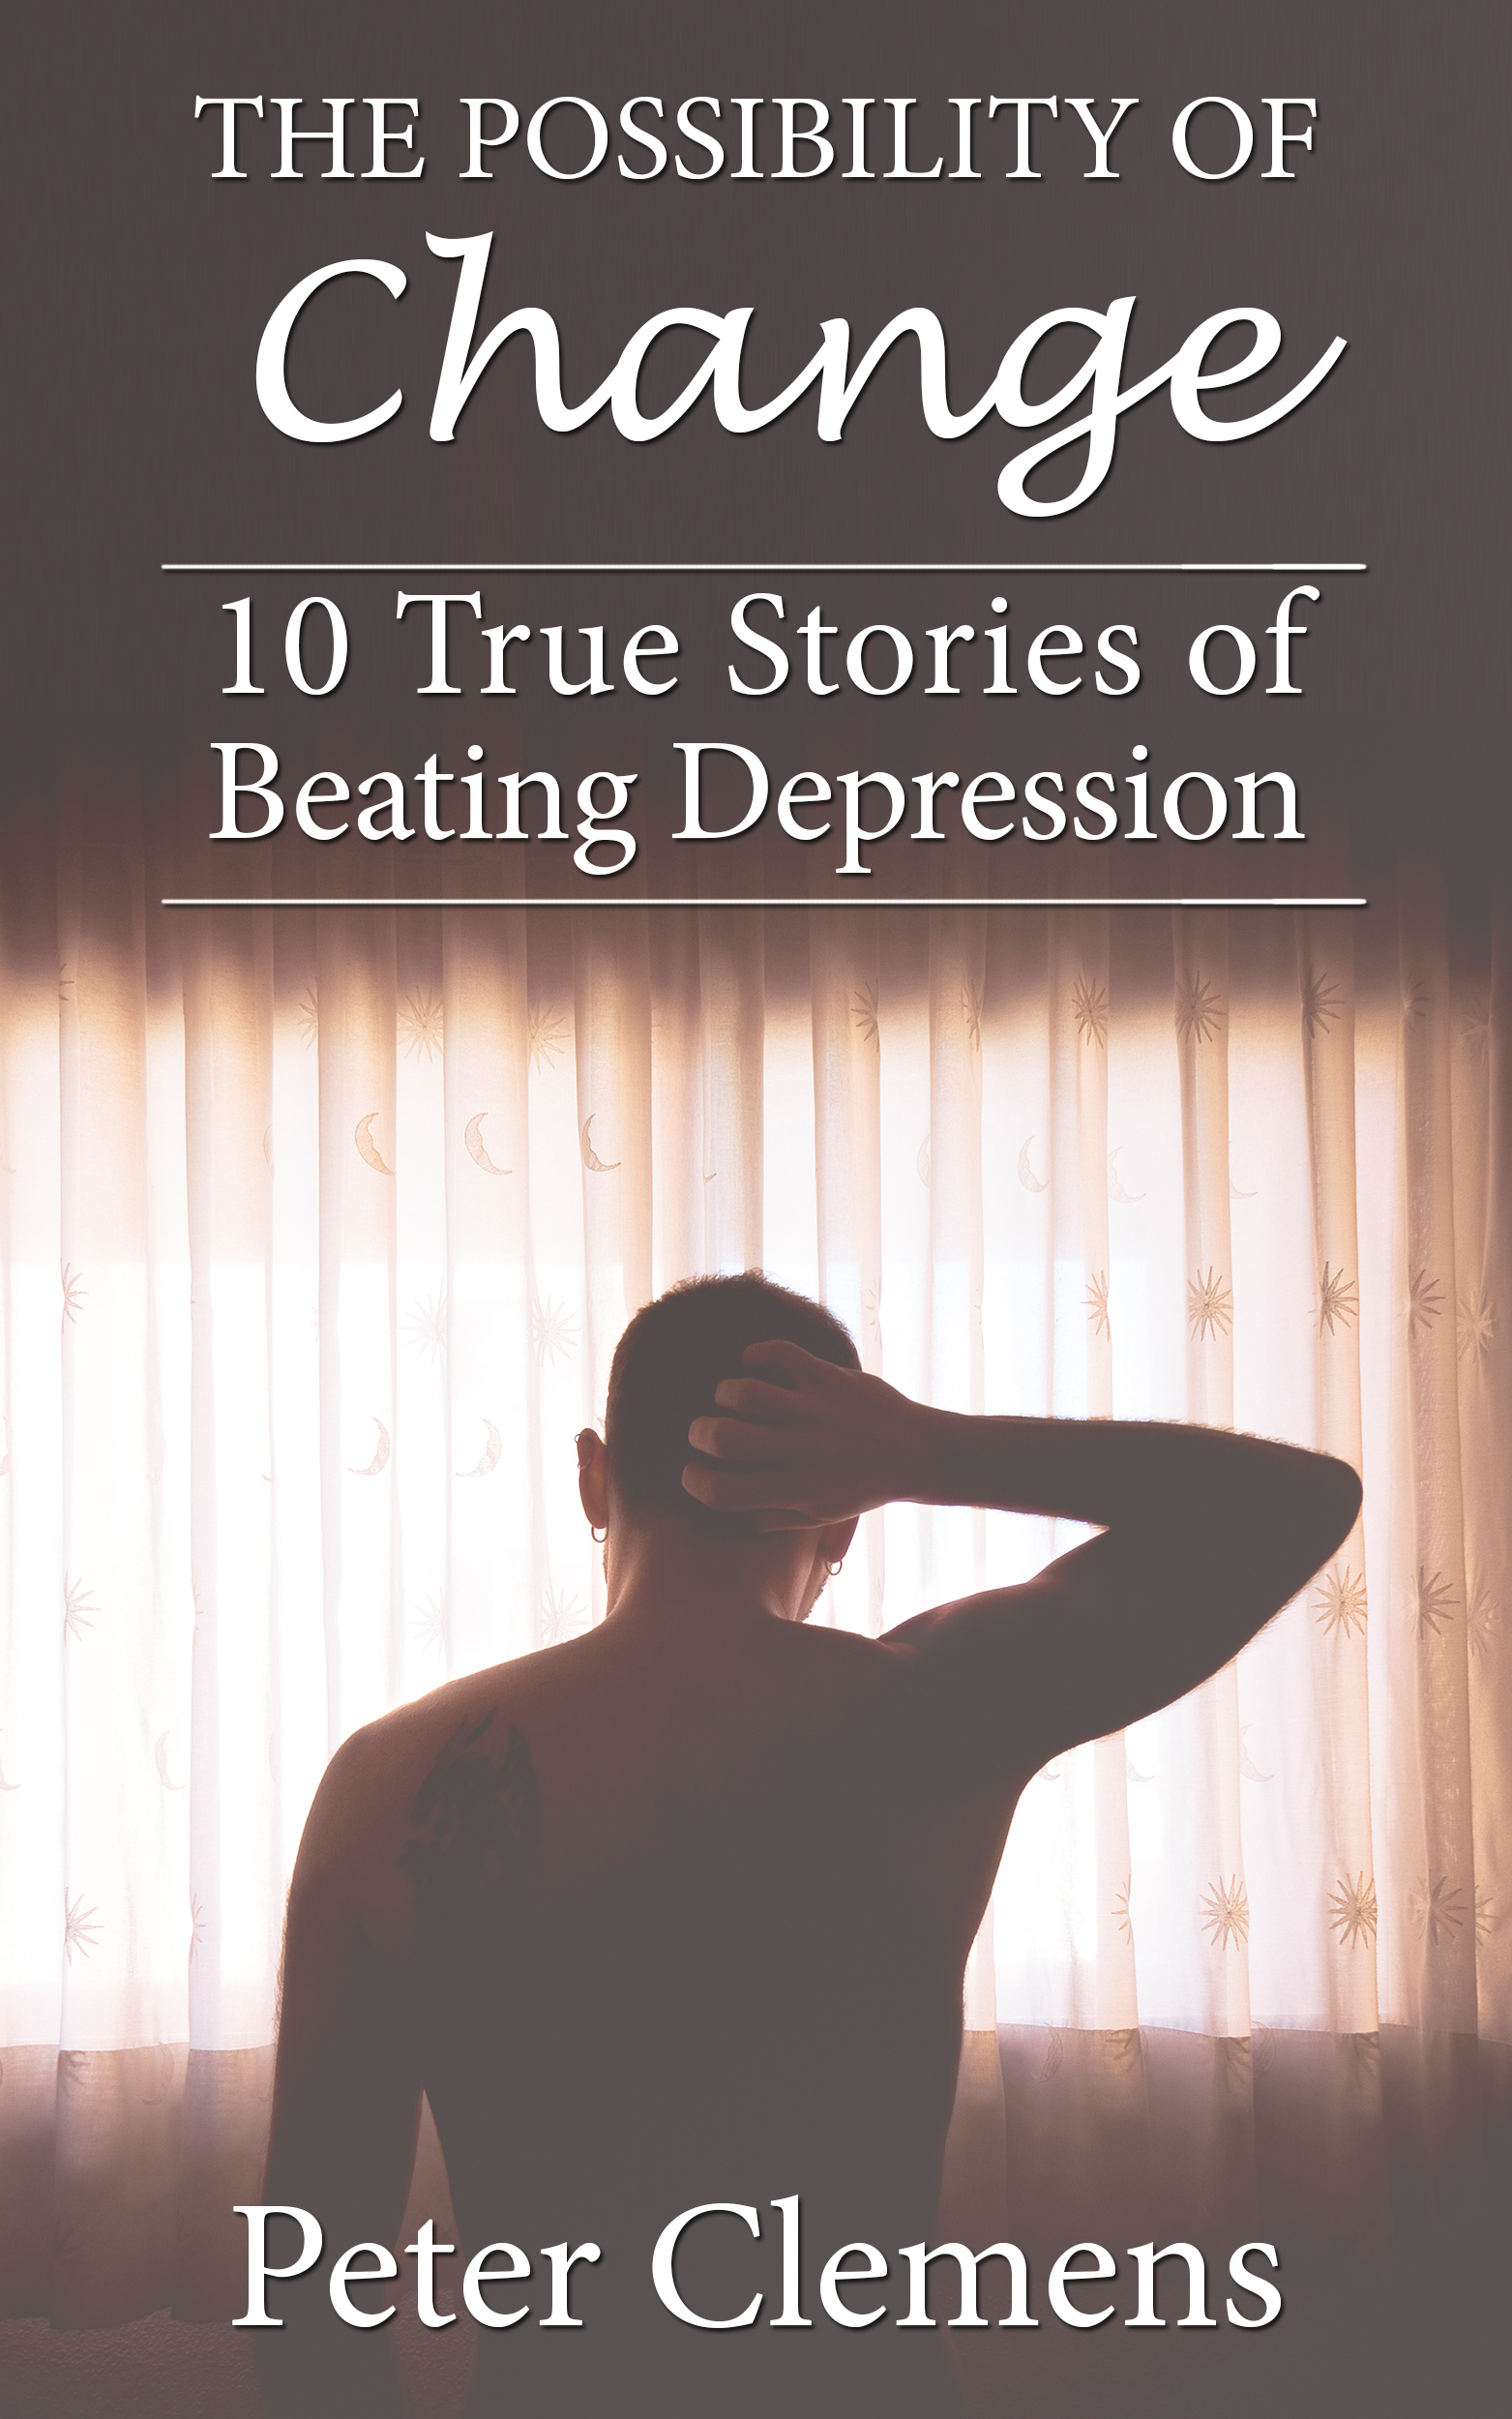 10 True Stories of Beating Depression